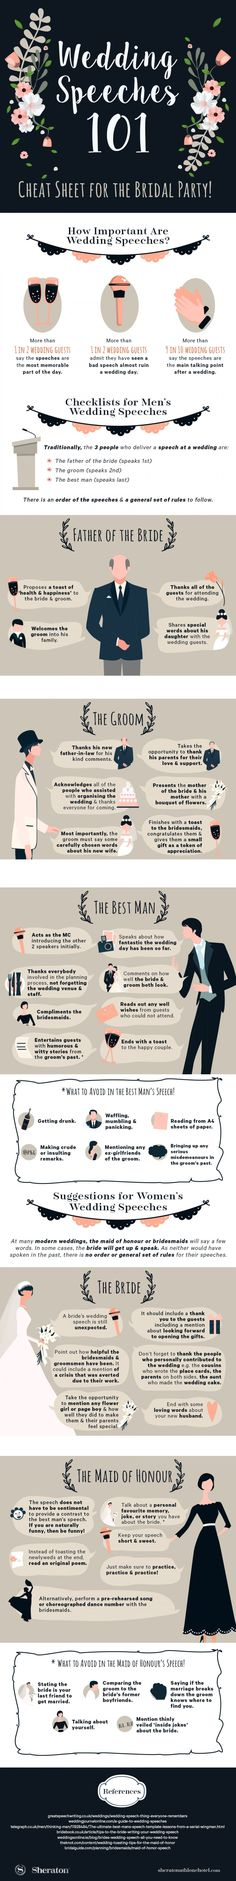 This infographic by Sheraton Athlone Hotel provide tips on how to write the perfect wedding speech, whether you're one half of the marrying couple, the best man, maid of honour or father of the bride. The best wedding speeches are light-hearted but stil Best Wedding Speeches, Wedding Advice, Before Wedding, Wedding Prep, Wedding Planner, Wedding Checklists, Wedding Ceremony, Our Wedding, Dream Wedding